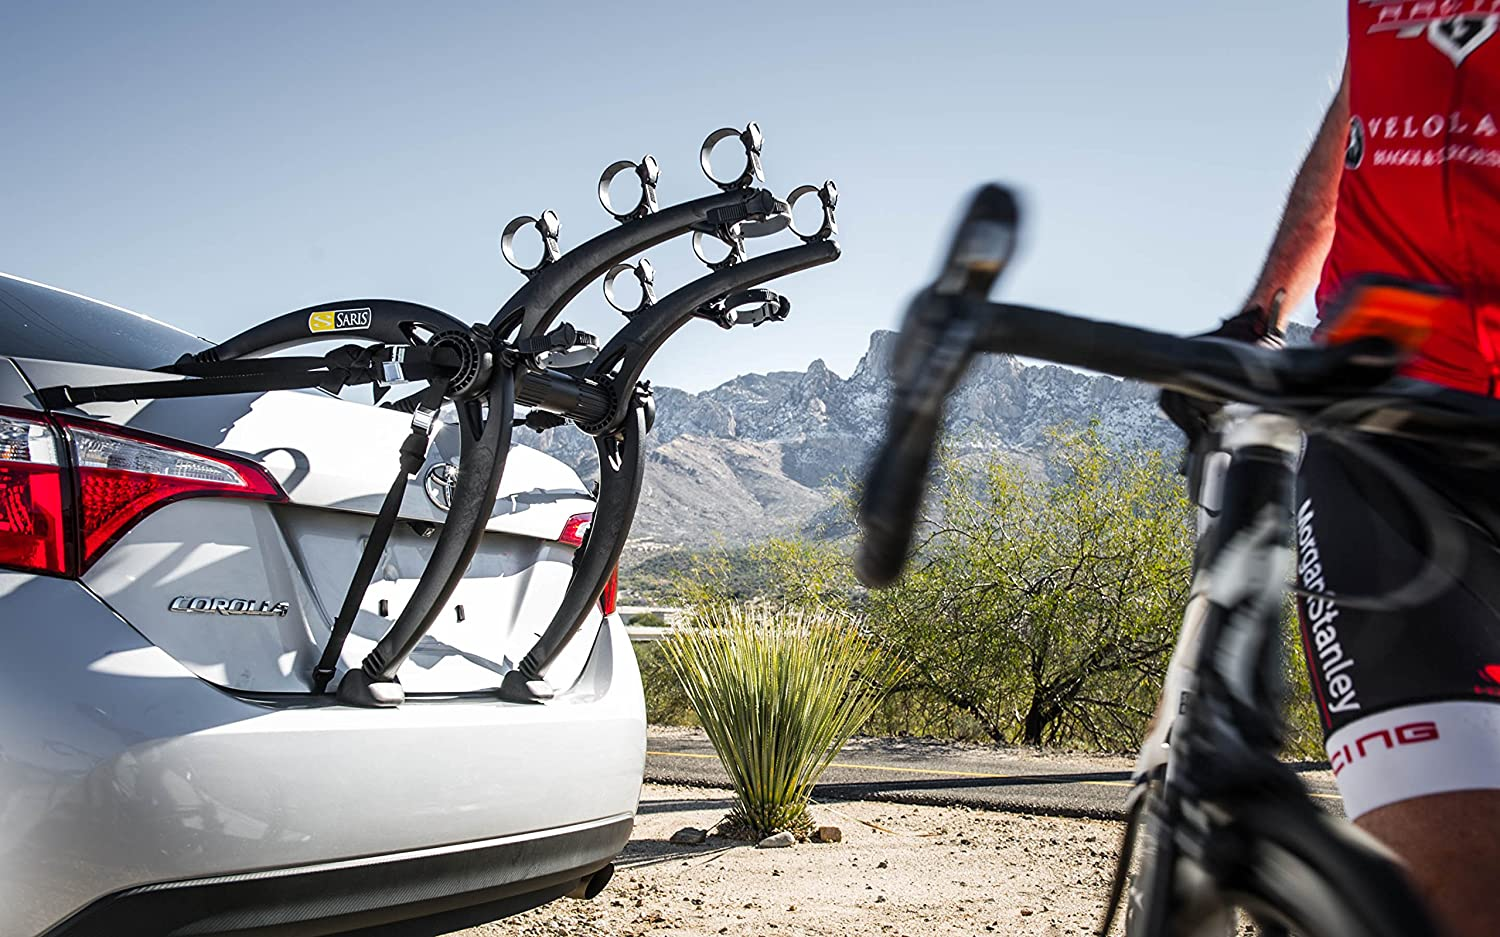 Trunk mounted car bike rack